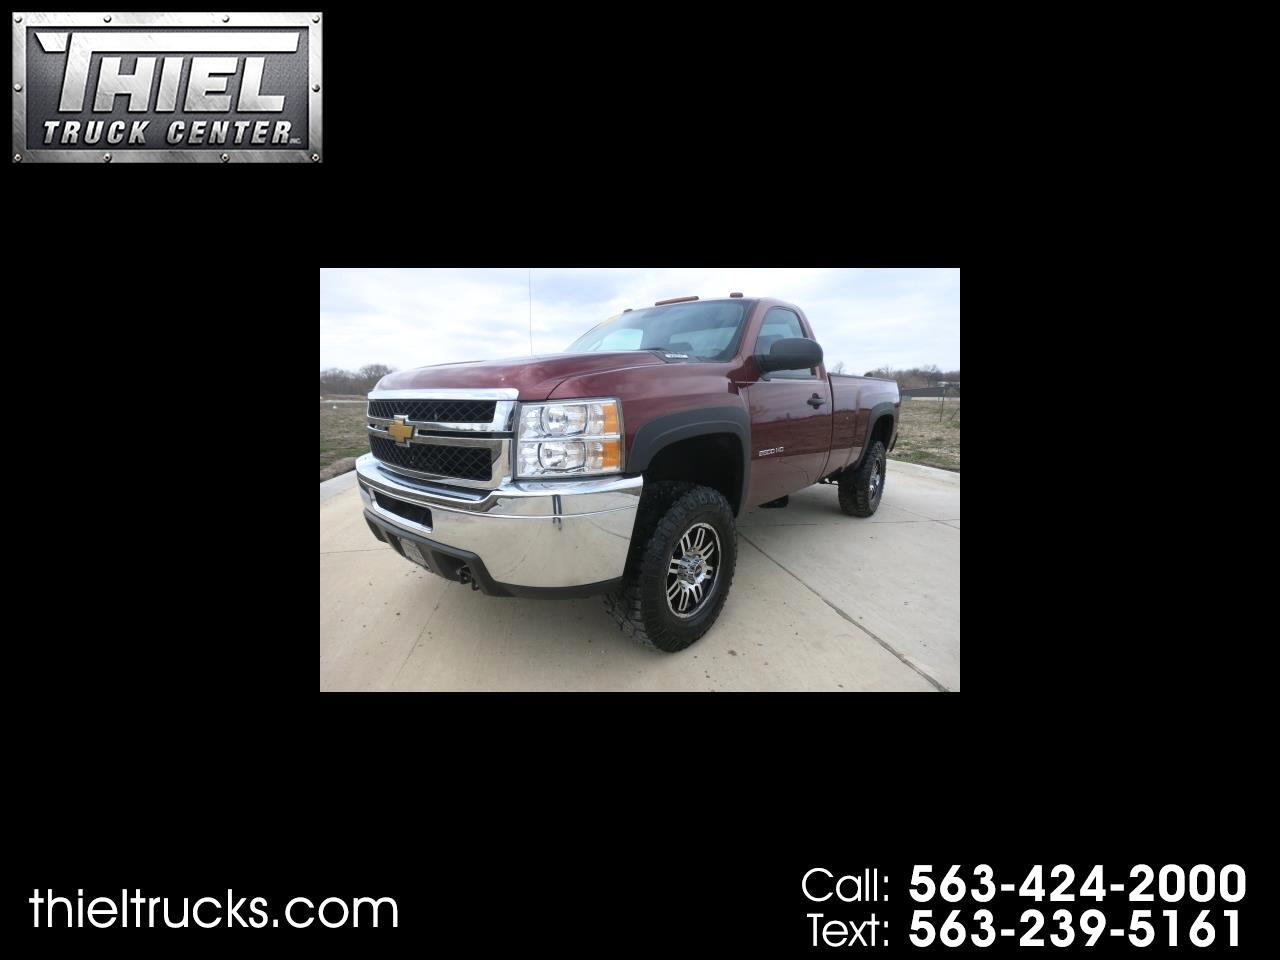 2013 Chevrolet Silverado 2500HD Regular Cab Long Box 4WD